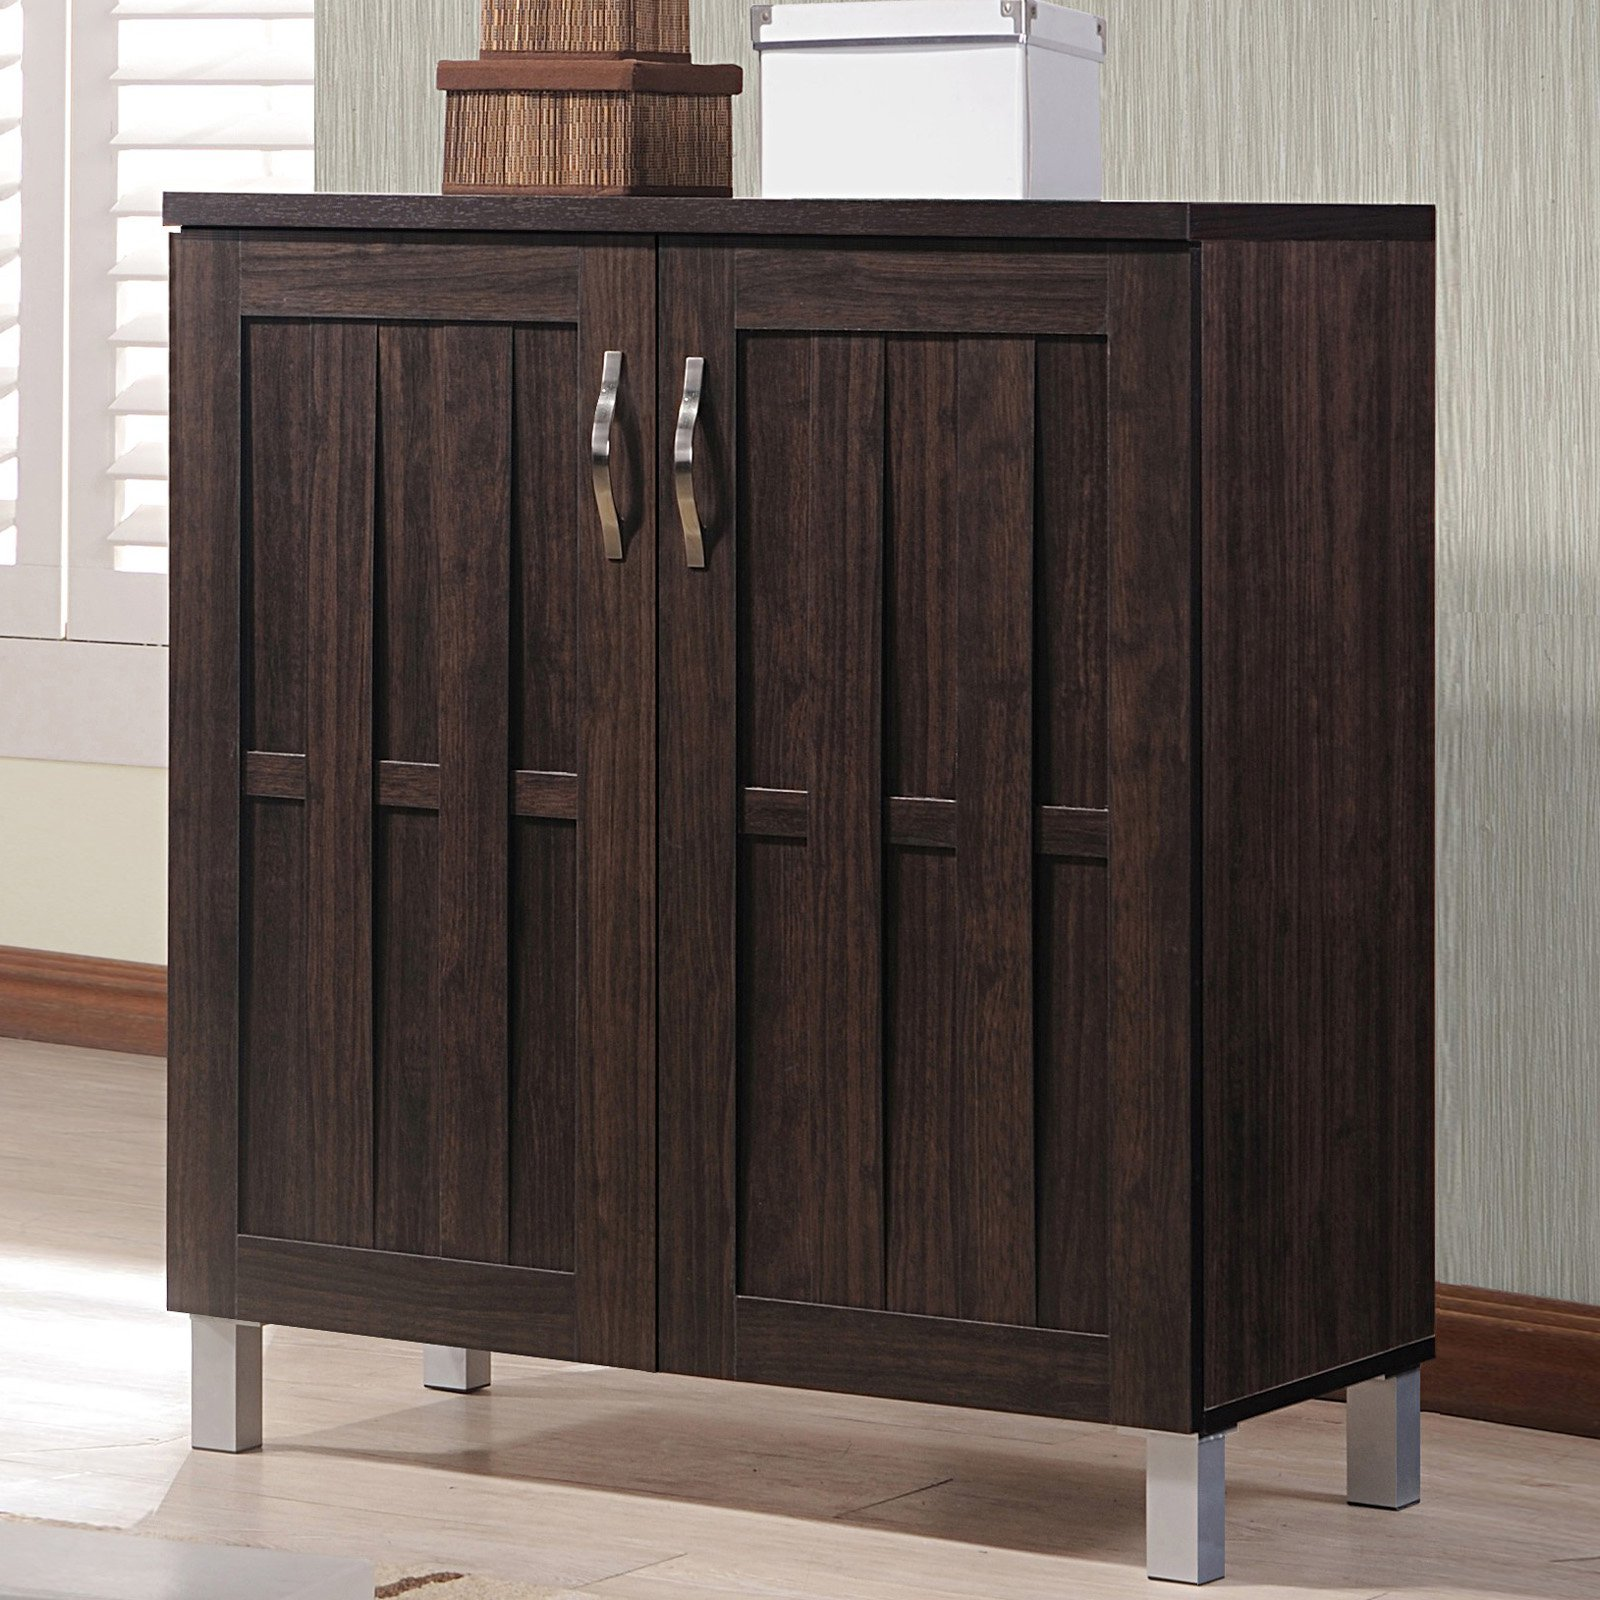 Baxton Studio Excel Modern and Contemporary Dark Brown Sideboard Storage Cabinet